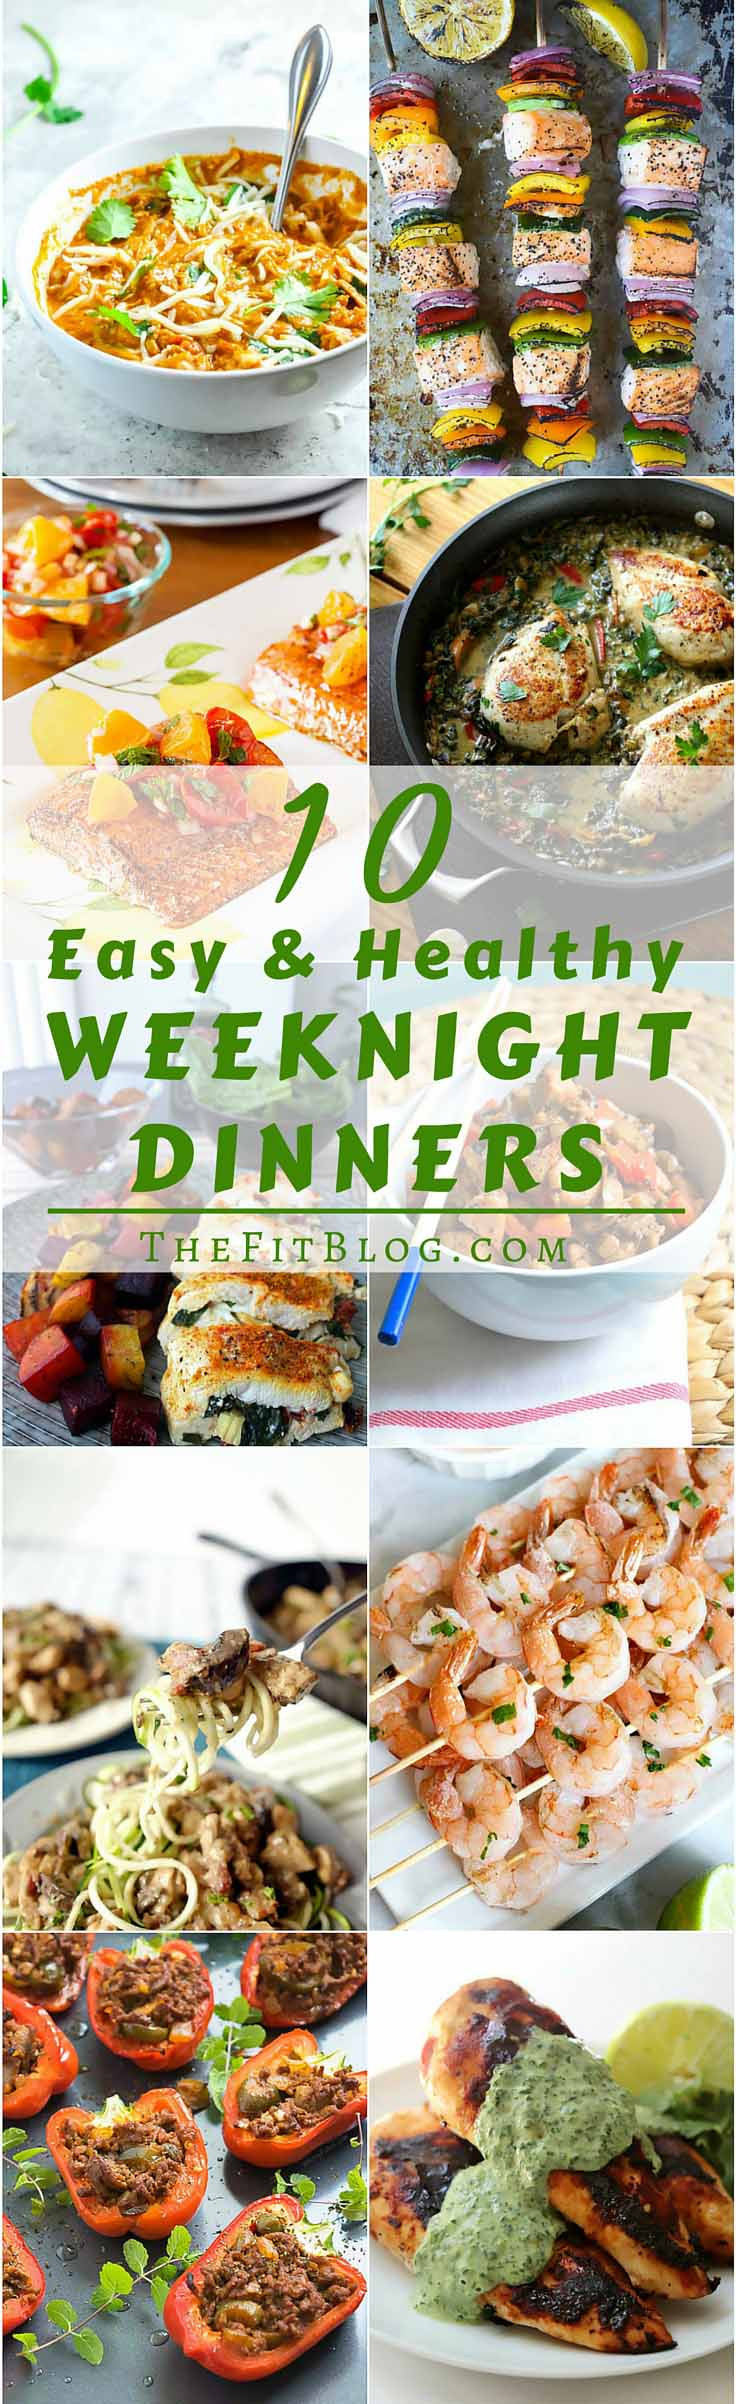 Easy Weeknight Dinners Healthy  10 Healthy and Easy Weeknight Dinners